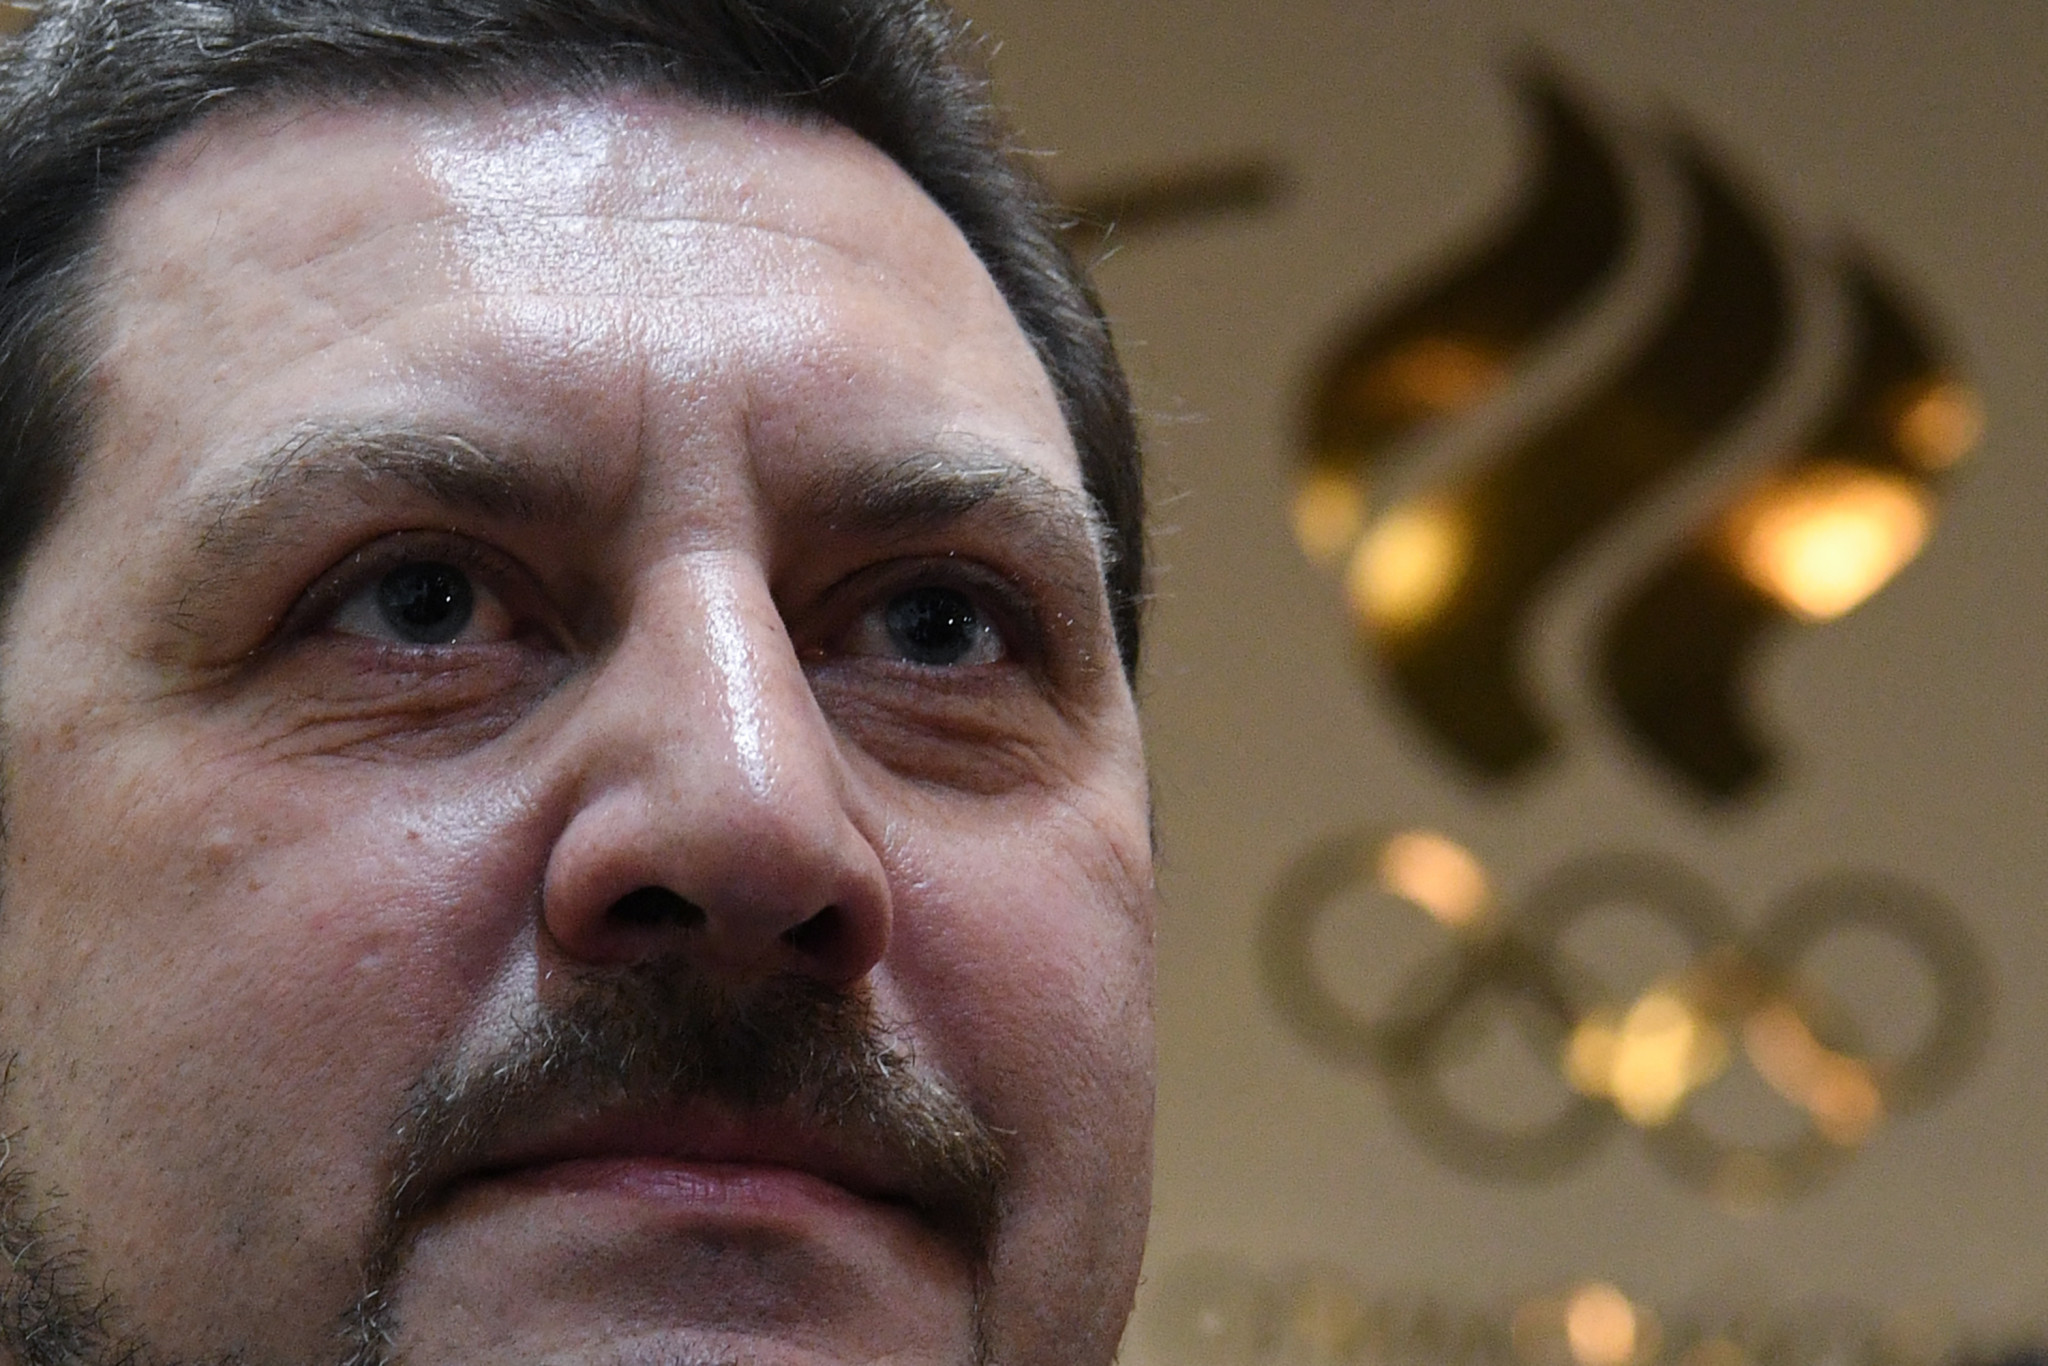 Fate of RusAF tops agenda at World Athletics Council meeting